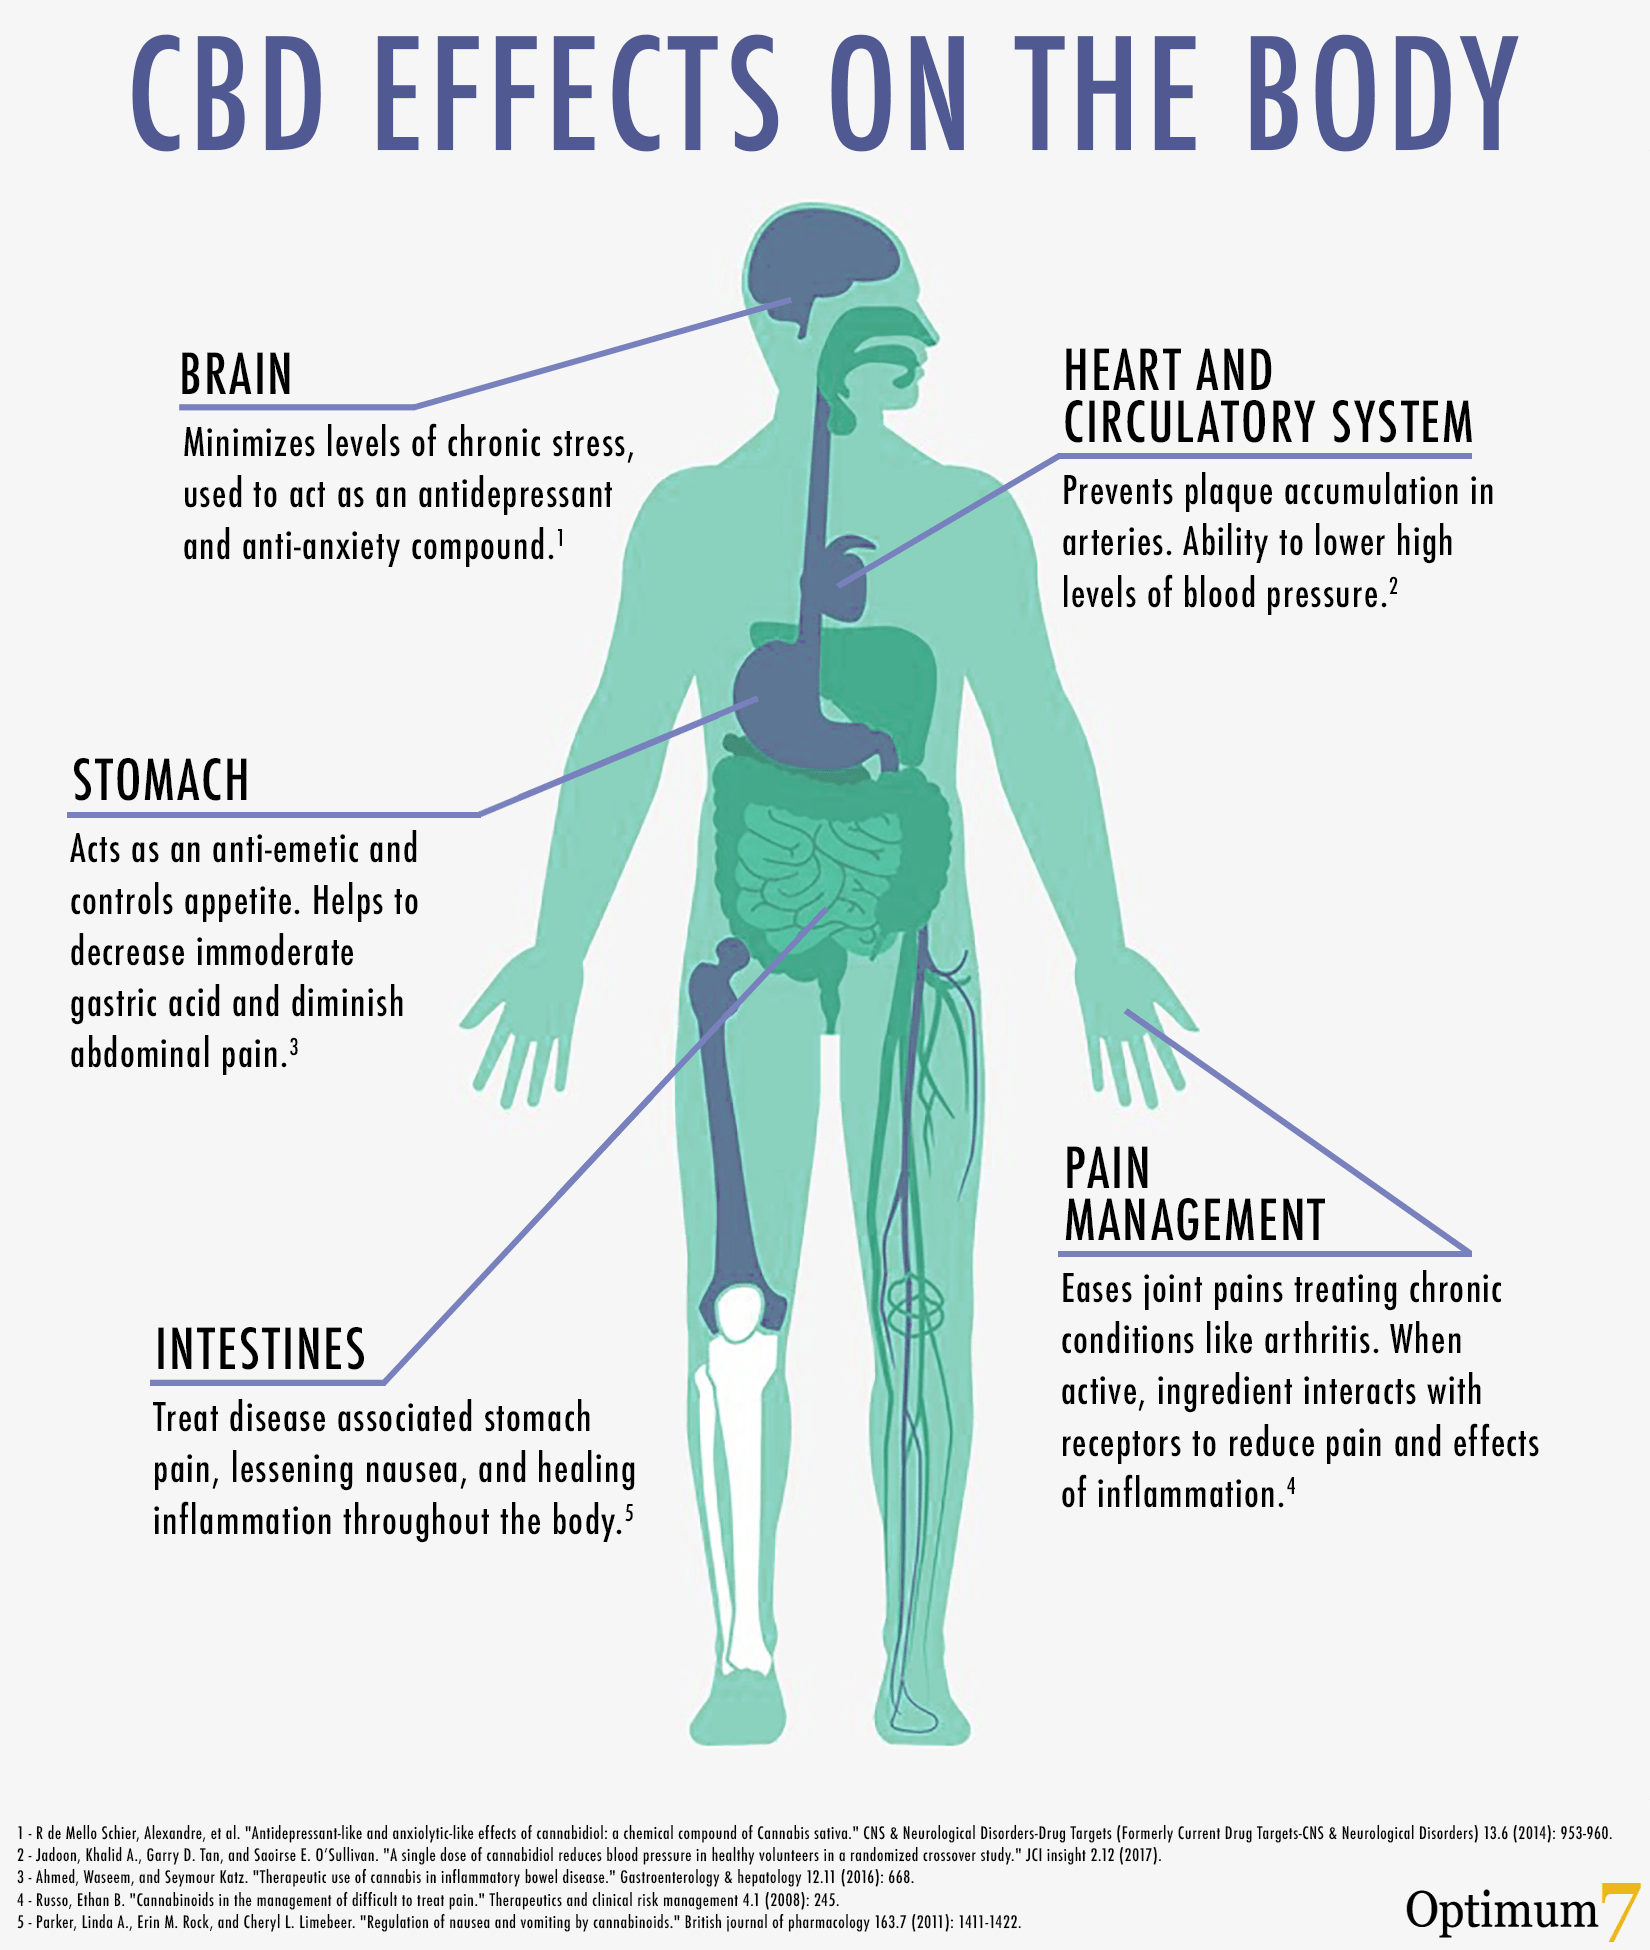 CBD Oil Effects on the Body